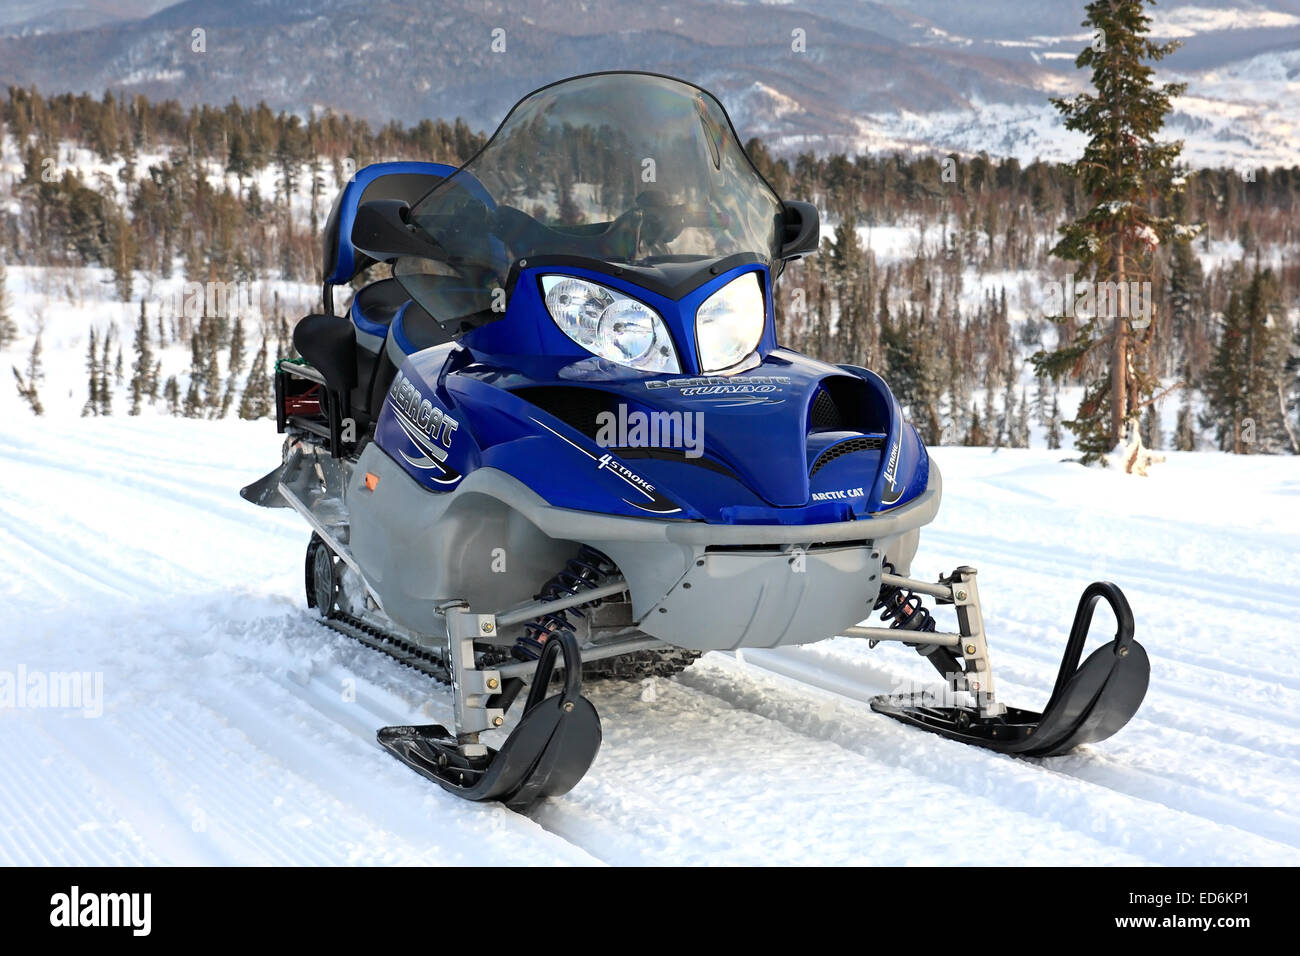 Snowmobile. - Stock Image